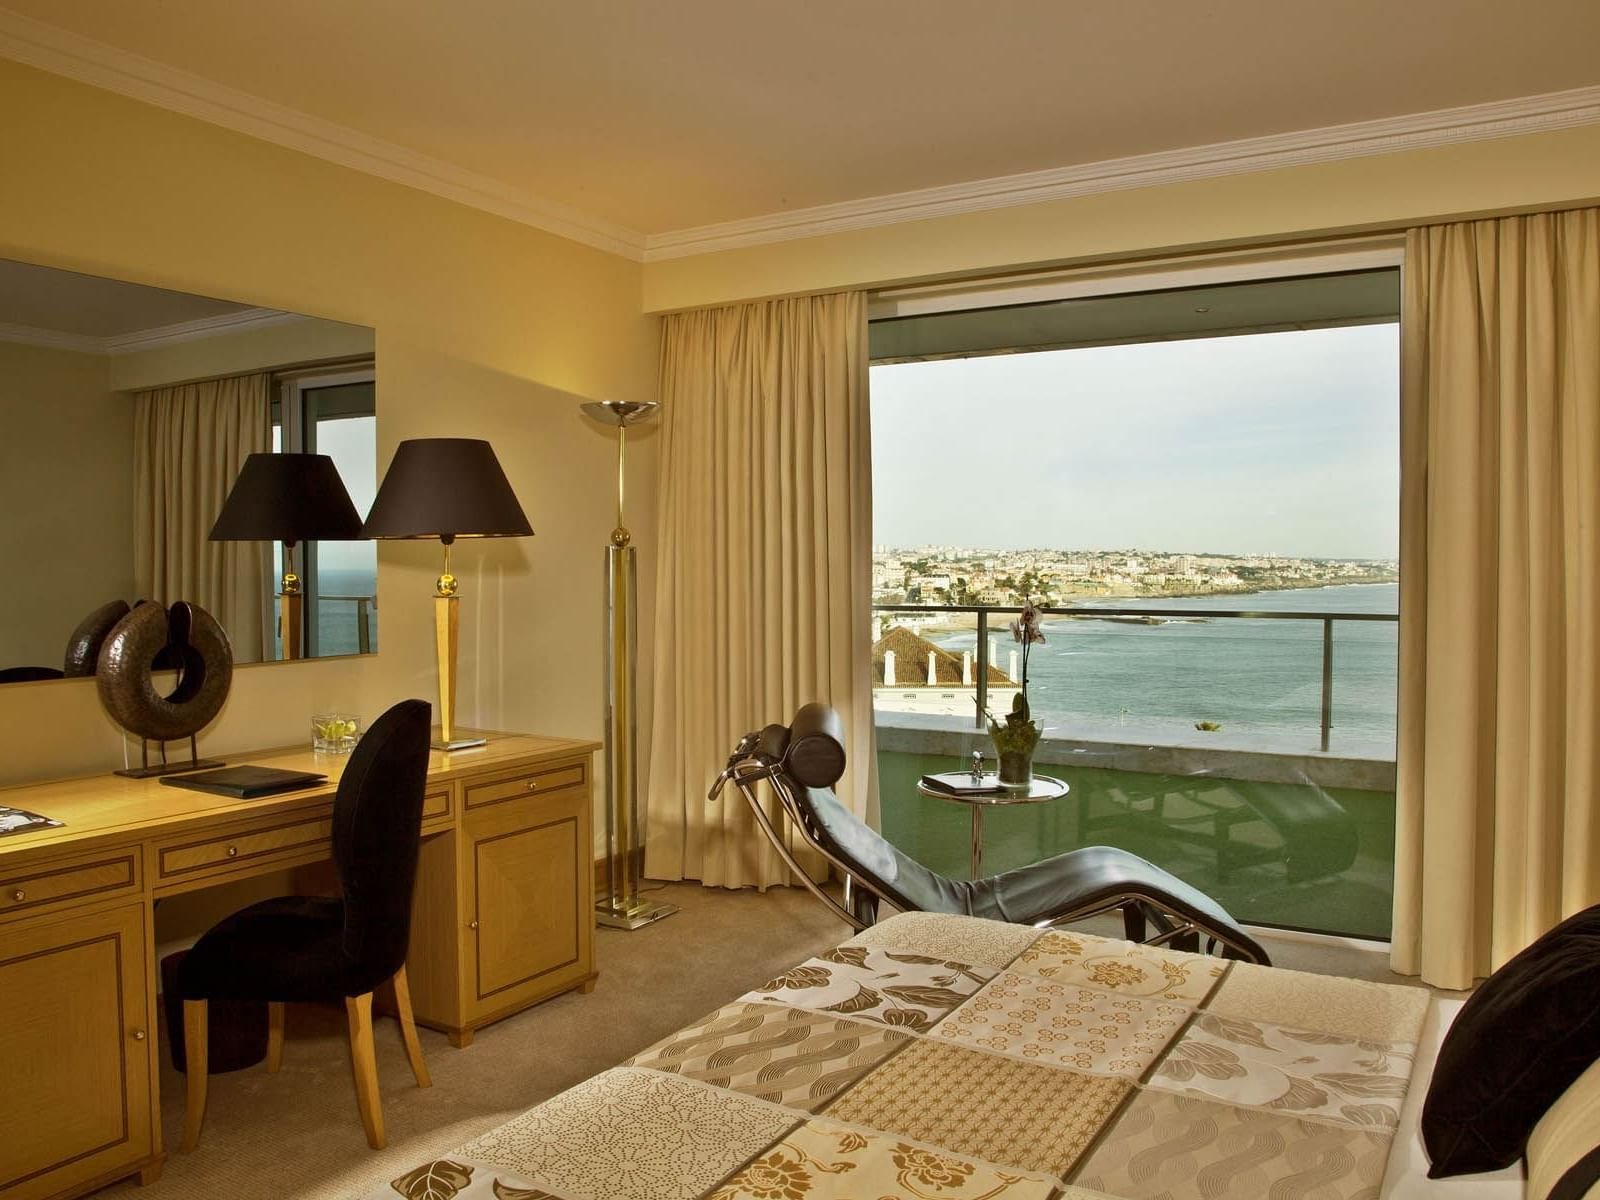 Deluxe Suite with a beautiful sea view at Hotel Cascais Miragem